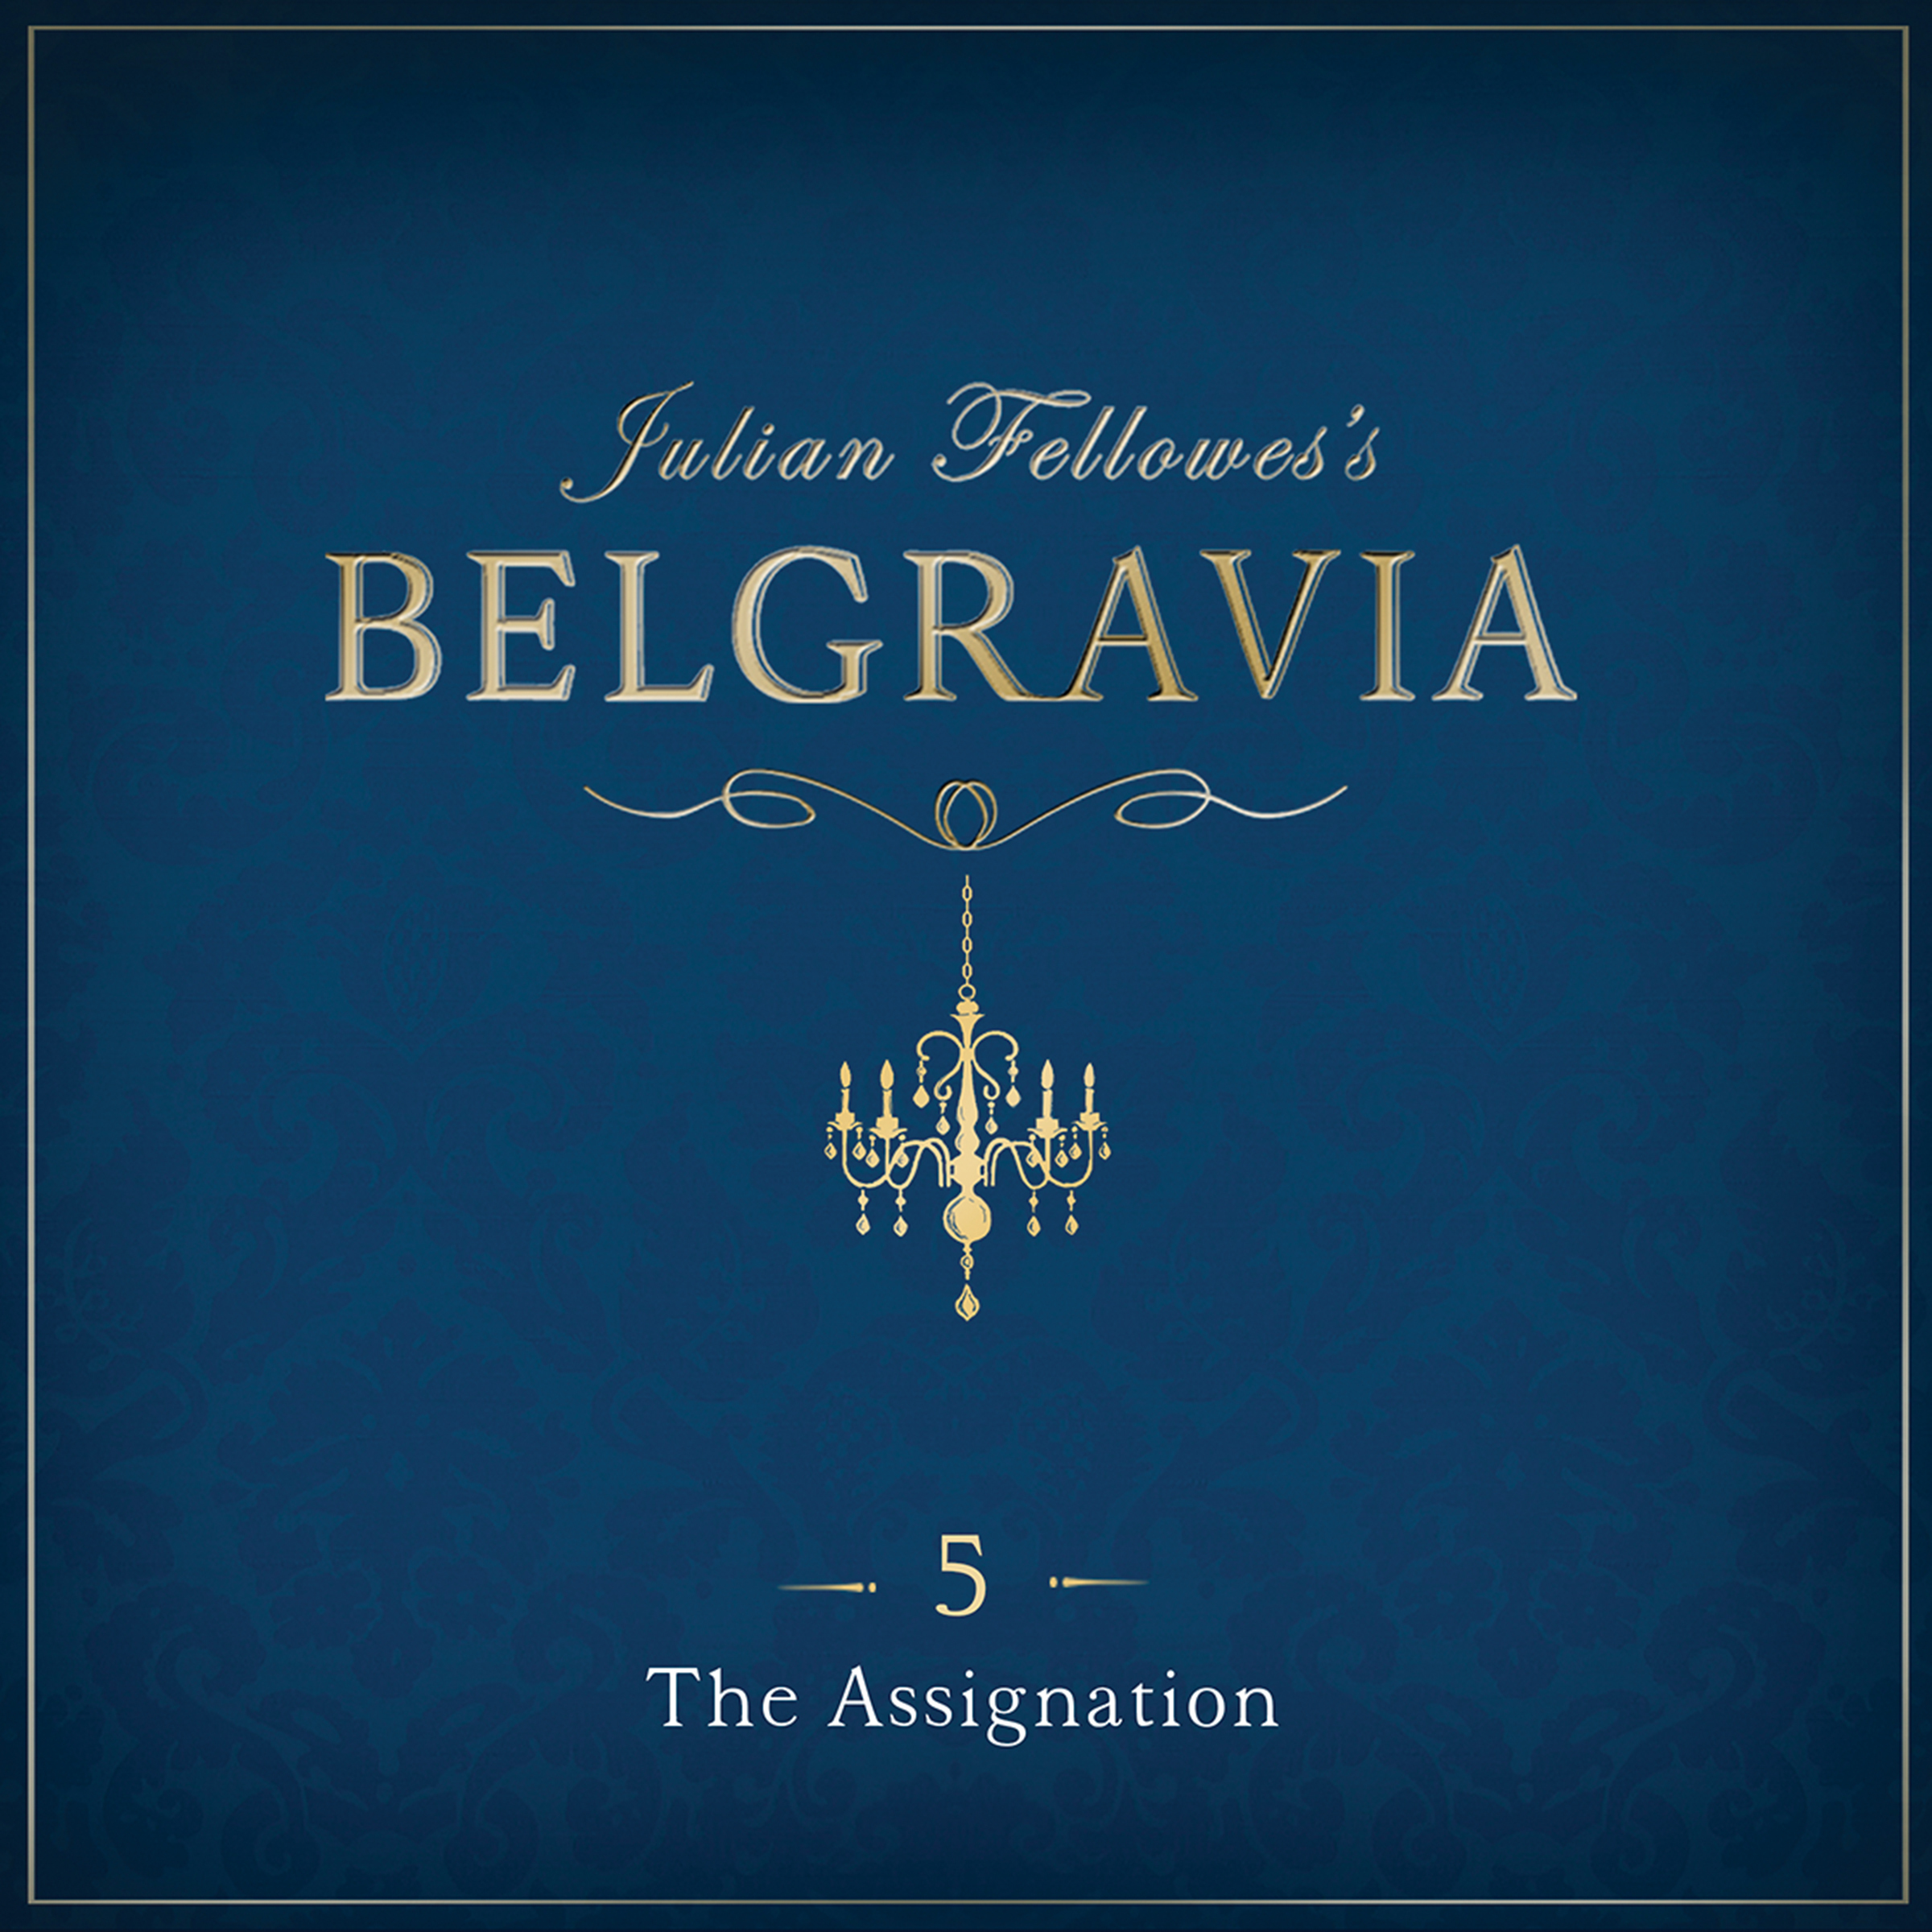 Printable Julian Fellowes' Belgravia, Episode 5: The Assignation Audiobook Cover Art